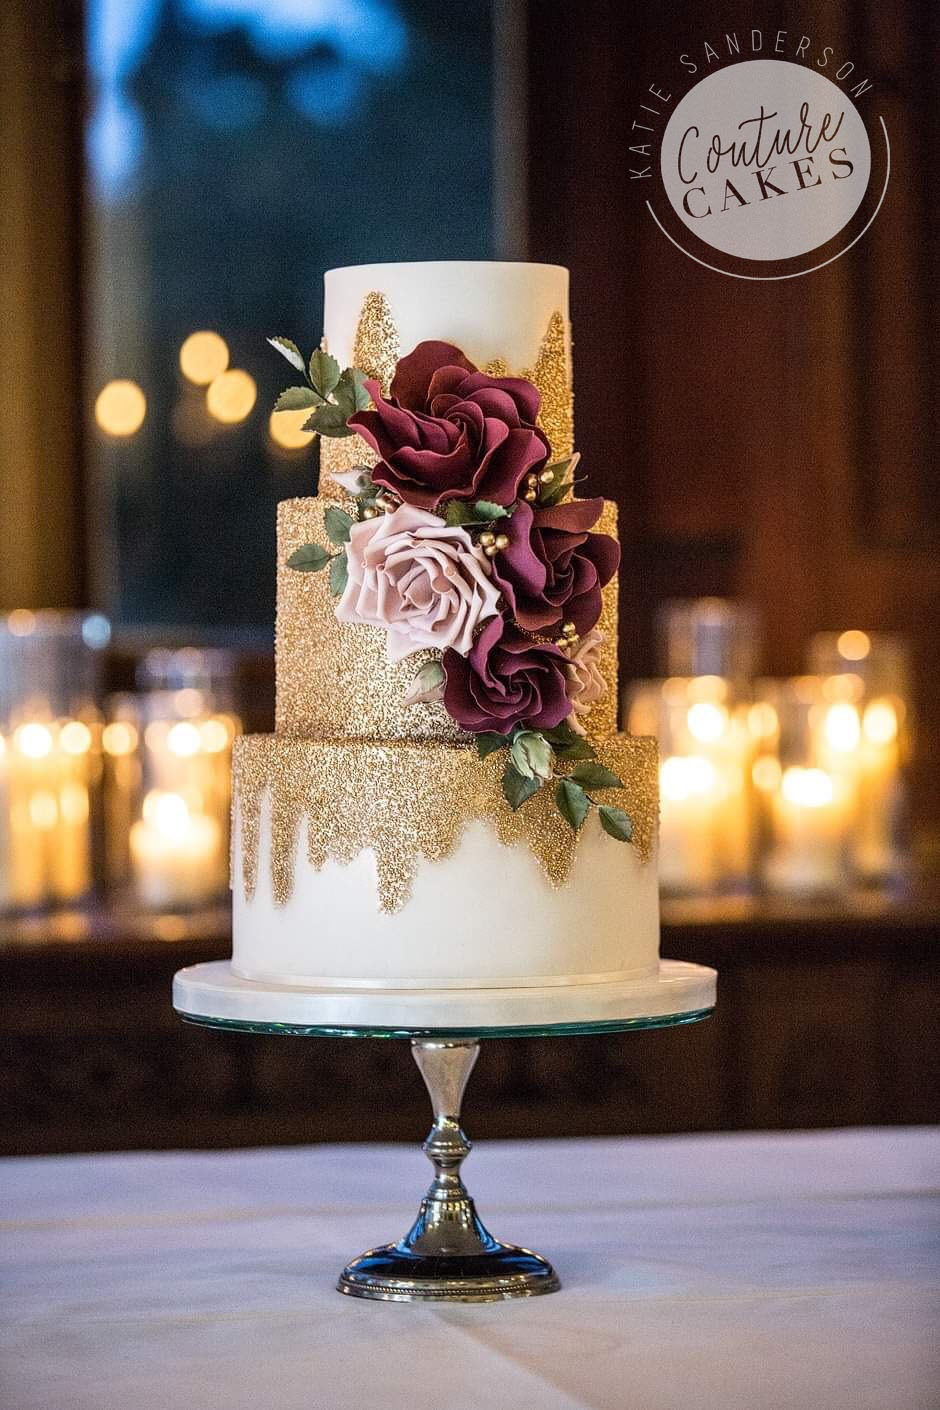 Gold Glitter Wedding Cake: Serves 100 portions, Price category C, £649